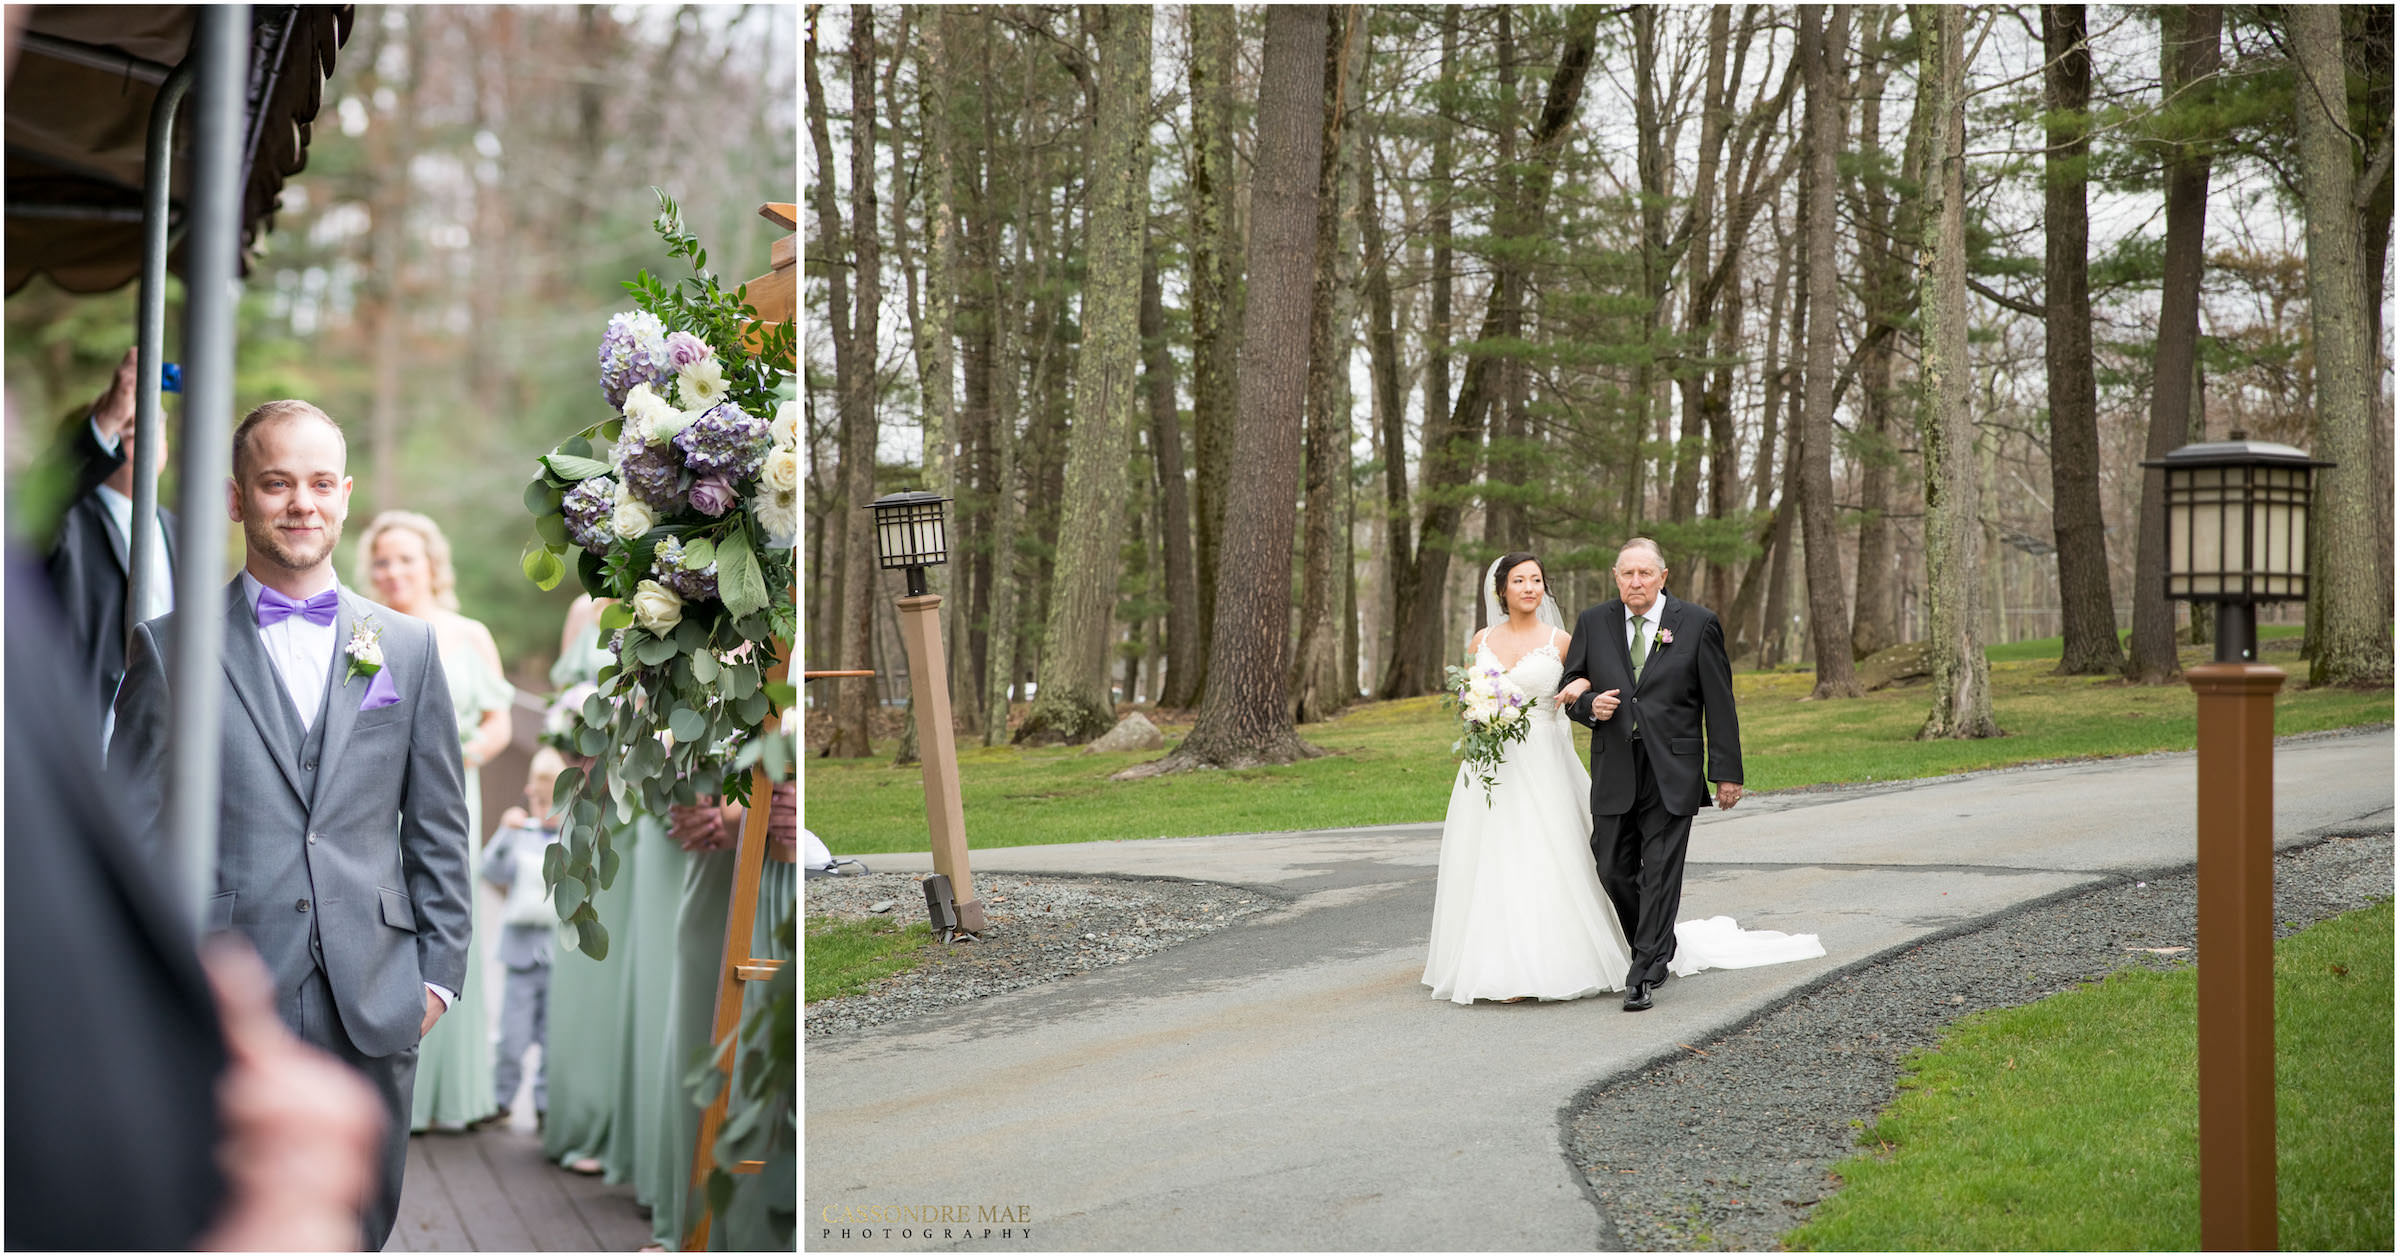 Cassondre Mae Photography Woodloch Resort Wedding 18.jpg